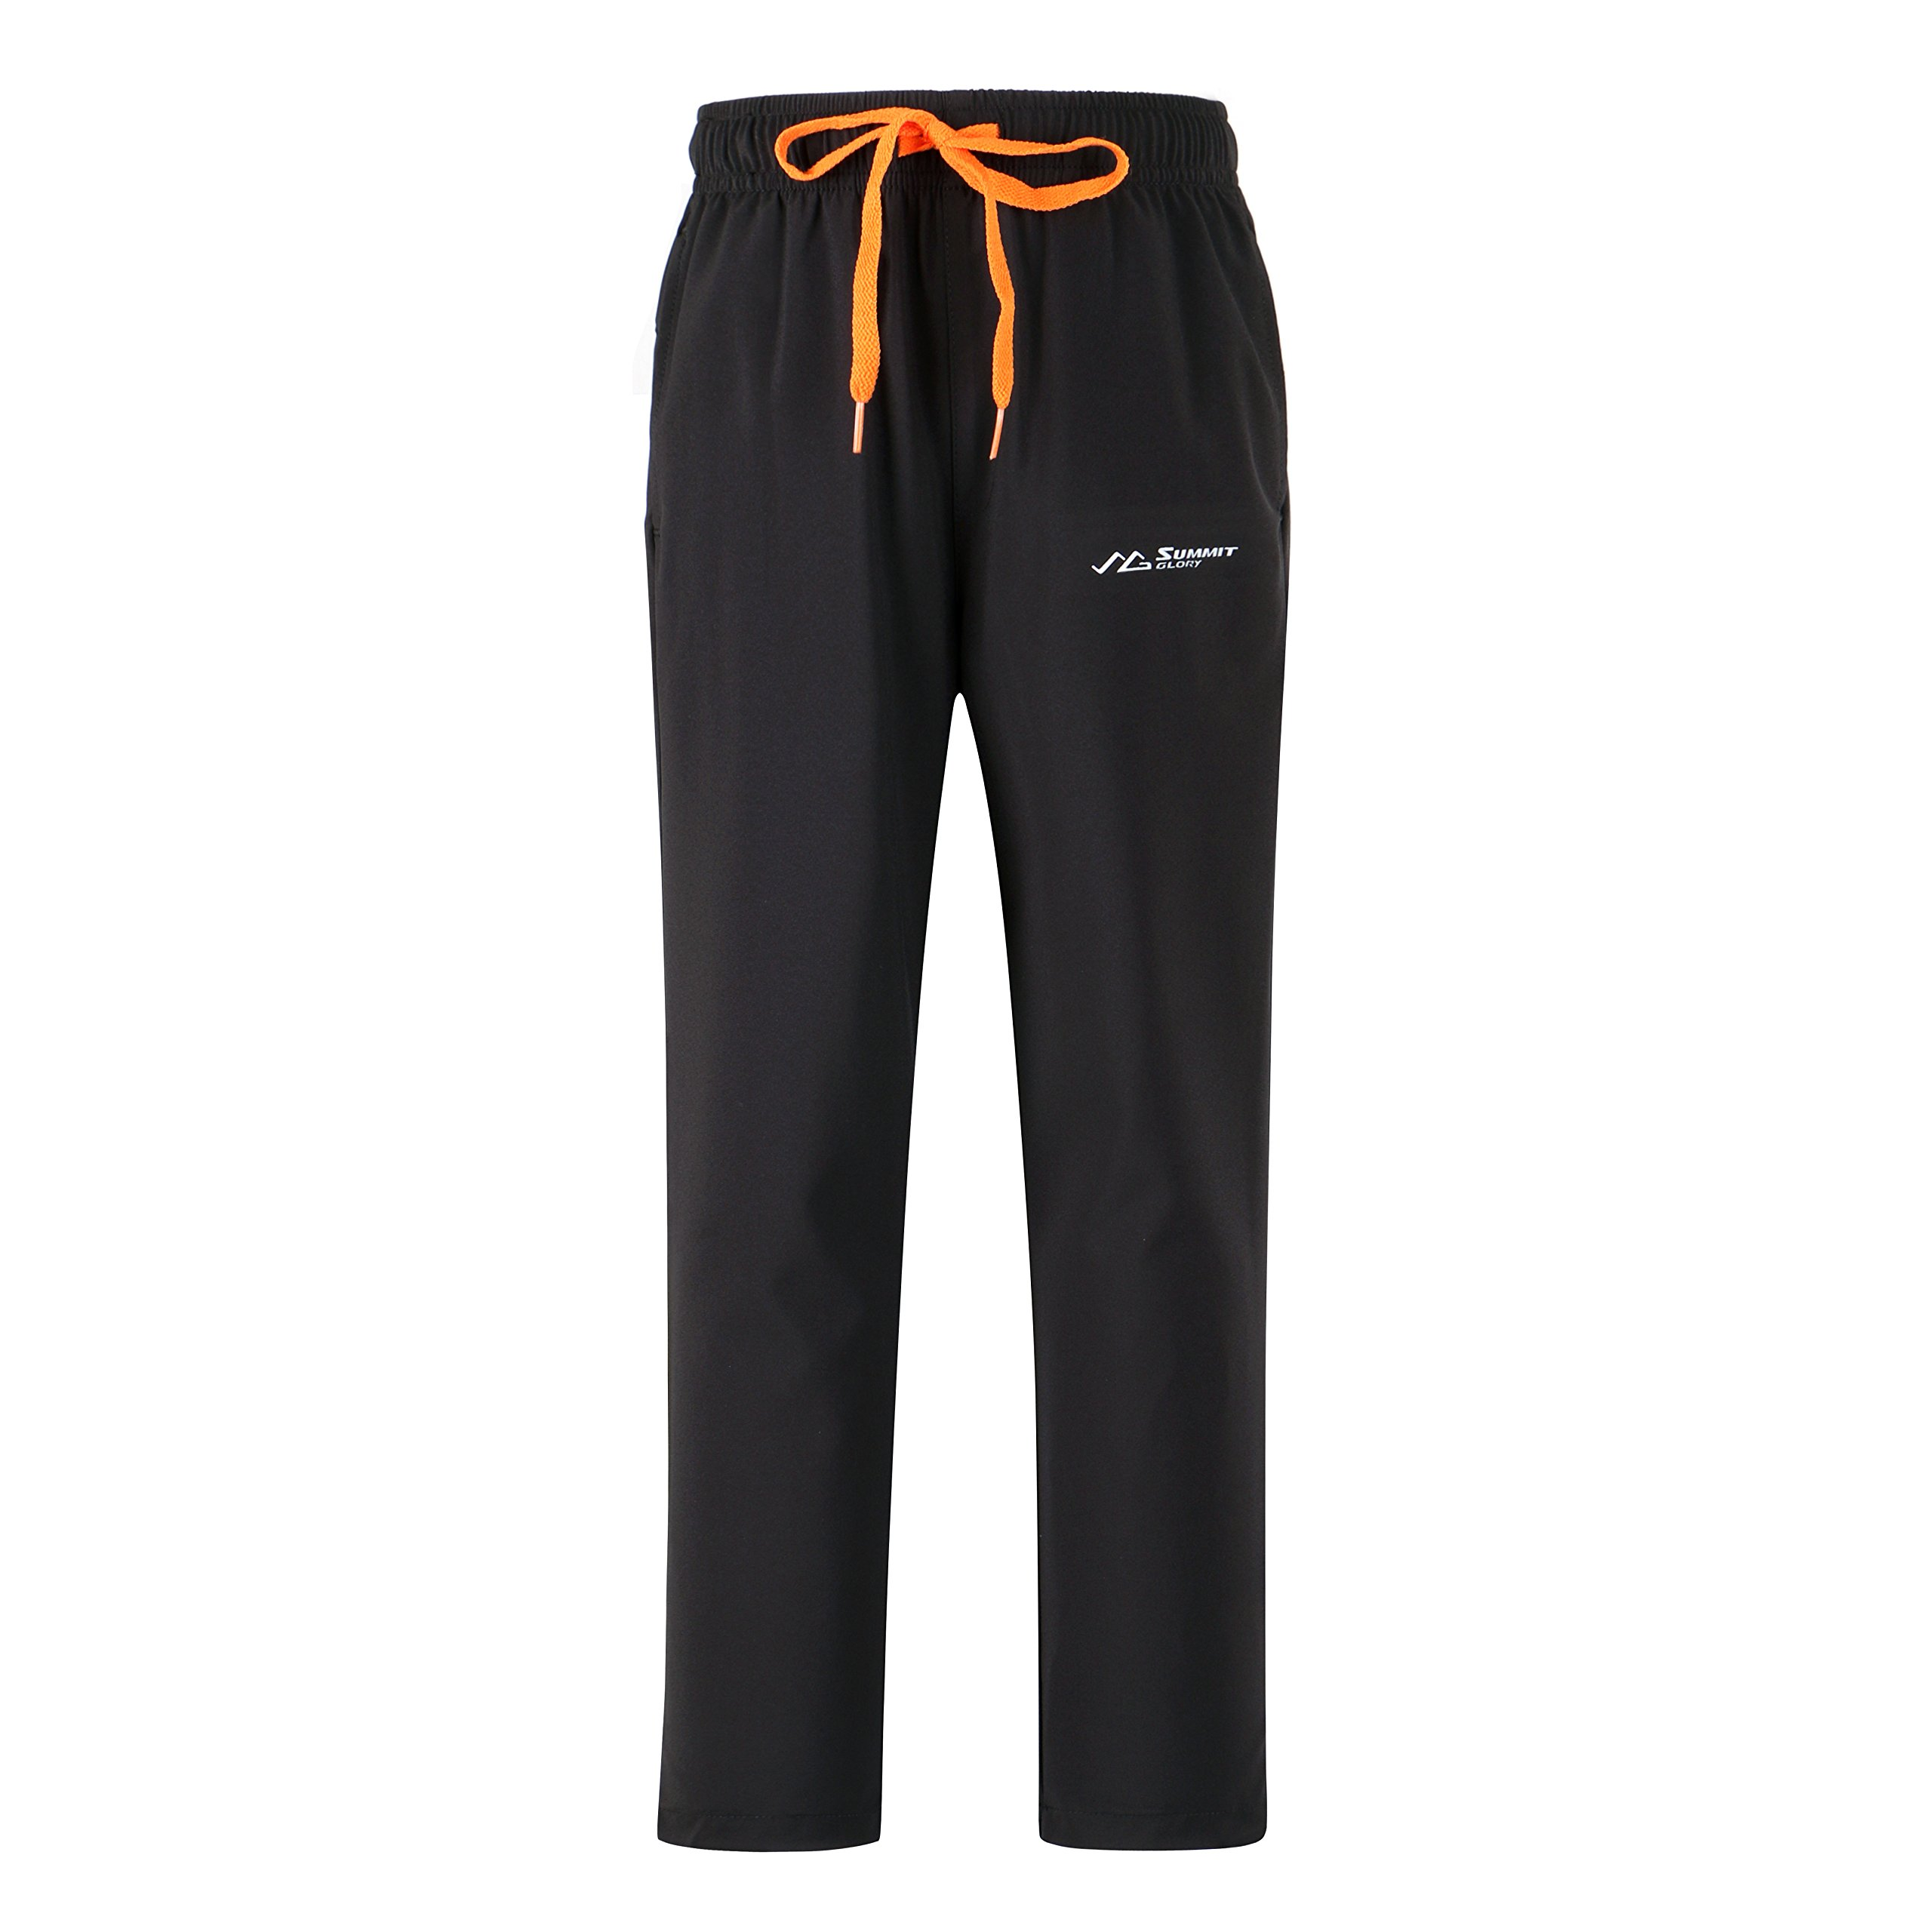 Summit Glory Lightweight Mountain Hiking Breathable Perfomance Utility Pants Black XL